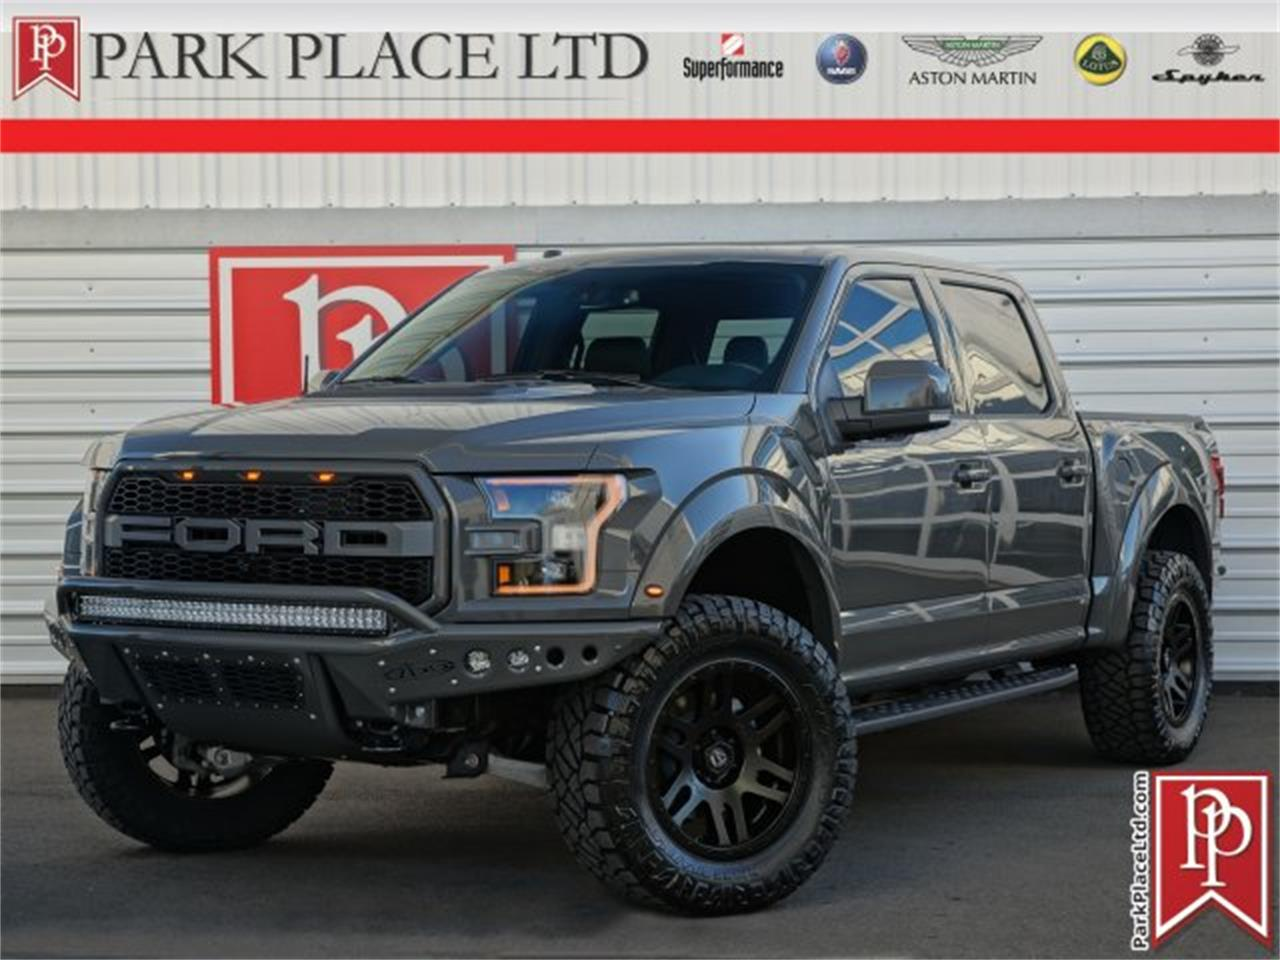 2018 ford f150 for sale classiccars com cc 1067073 2018 ford f150 for sale classiccars